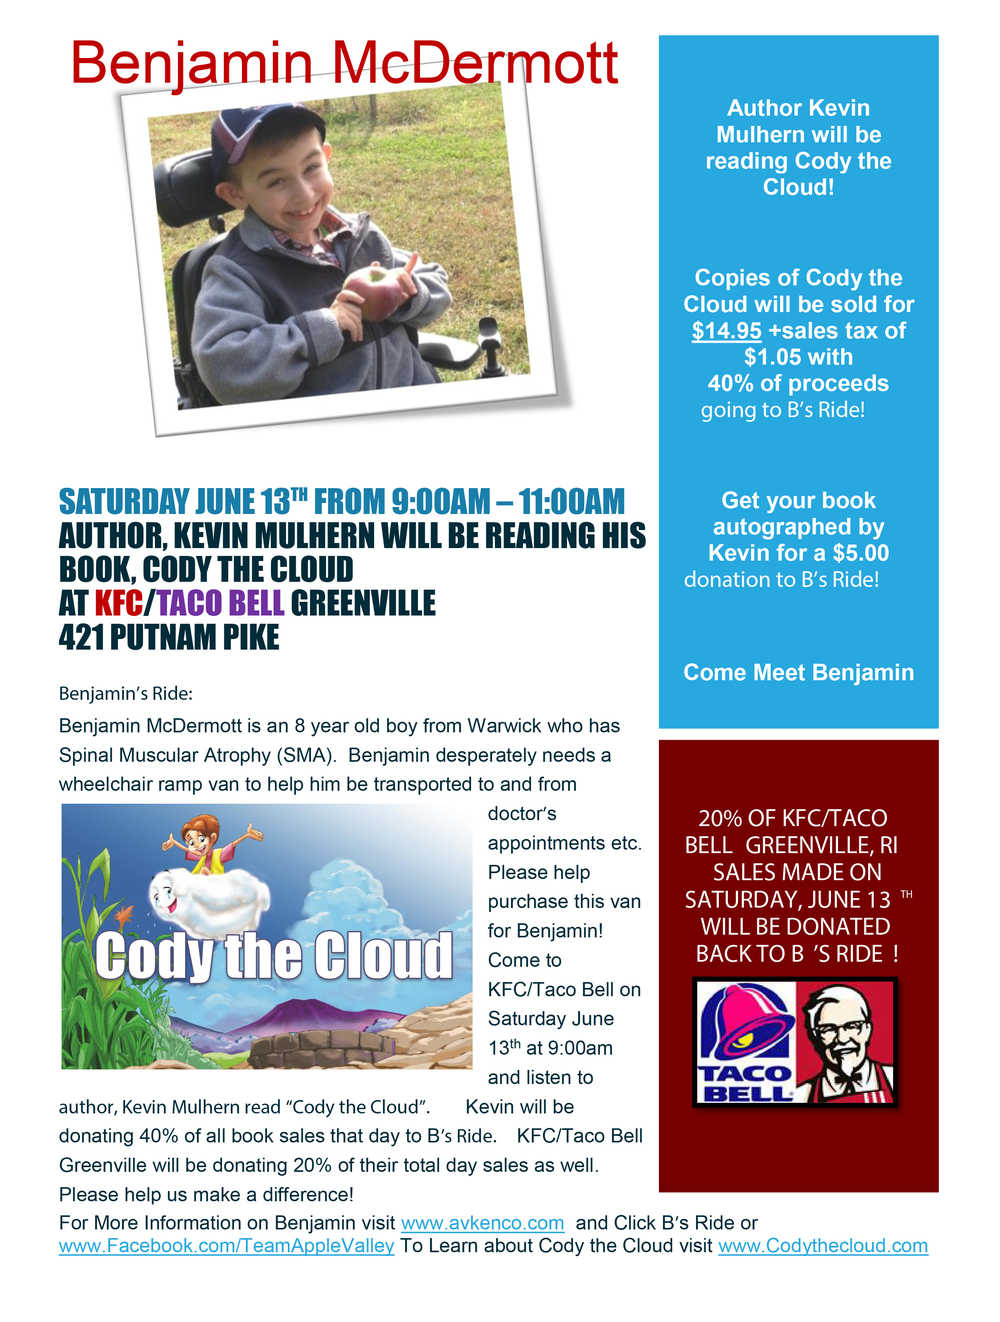 "Very excited about the ""Cody"" fundraising event, and VERY grateful to the Rianna family and KFC/Taco Bell for being so very kind with their time, space, support, and extremely generous charitable donation! Please come out and support B's Ride on Saturday, June 13th from 9-11 a.m. at KFC/Taco Bell in Greenville, RI! Benjamin will be there as well!"